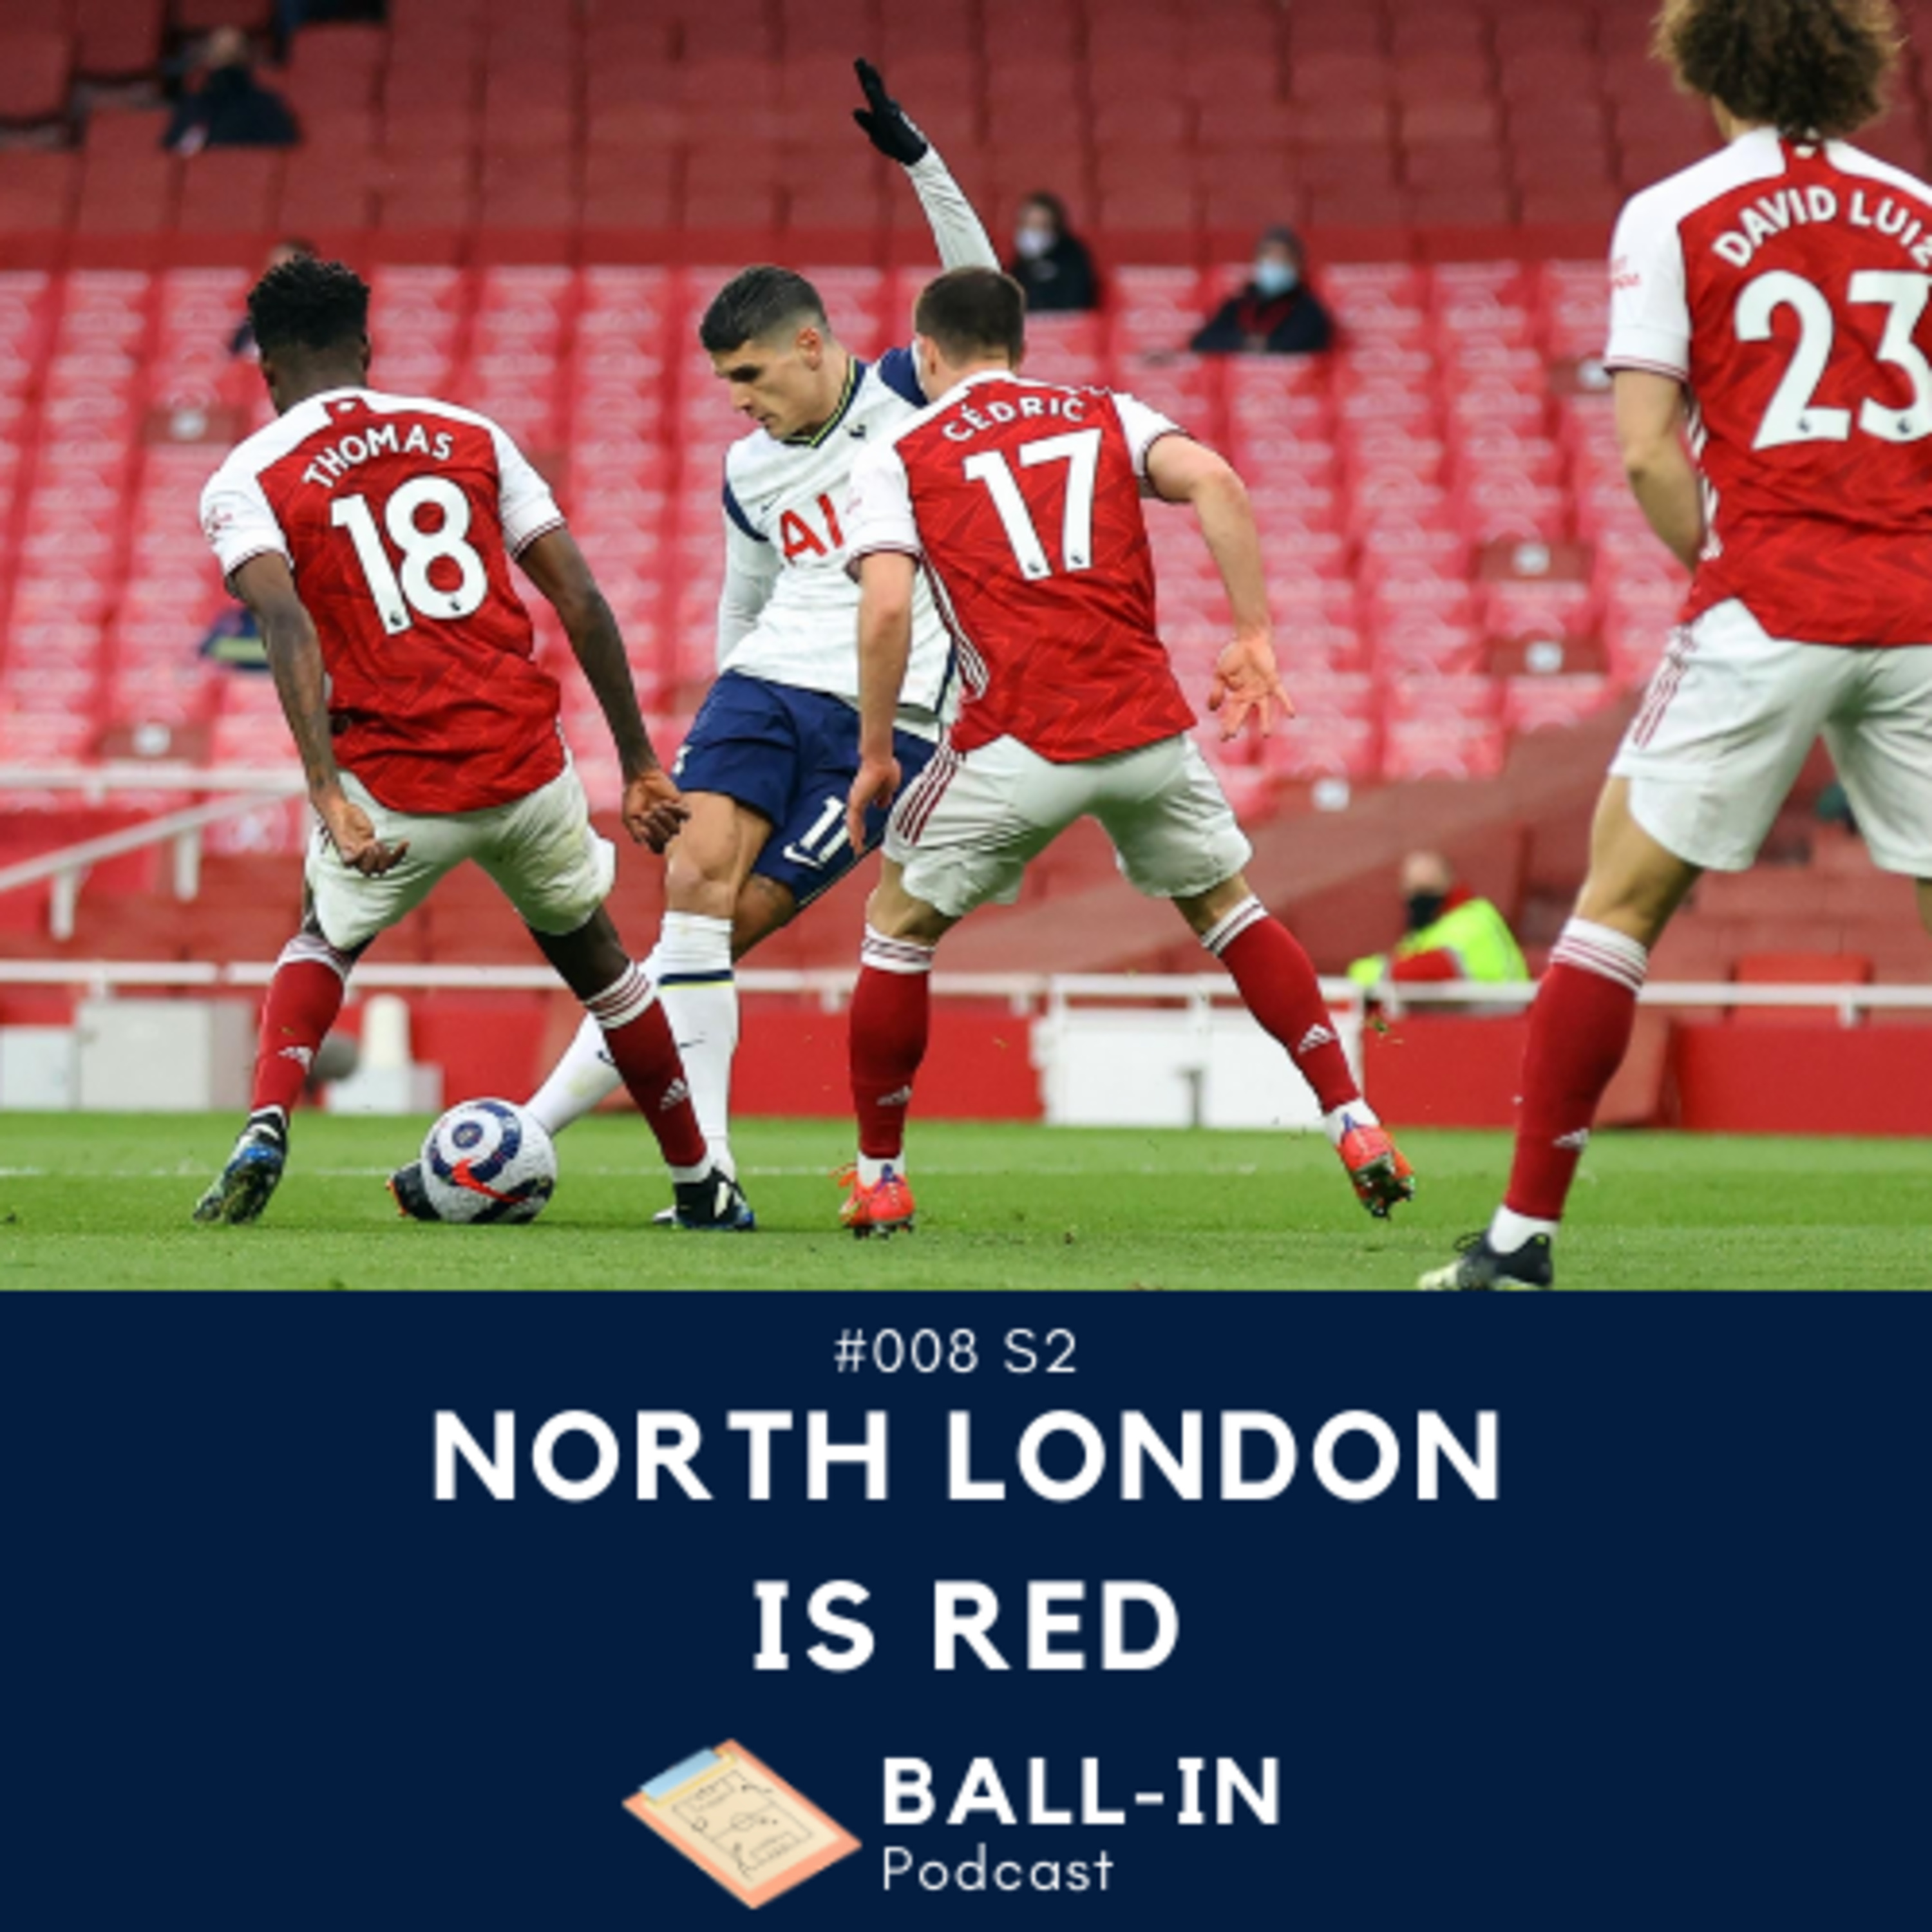 #008 S2: North London Is Red